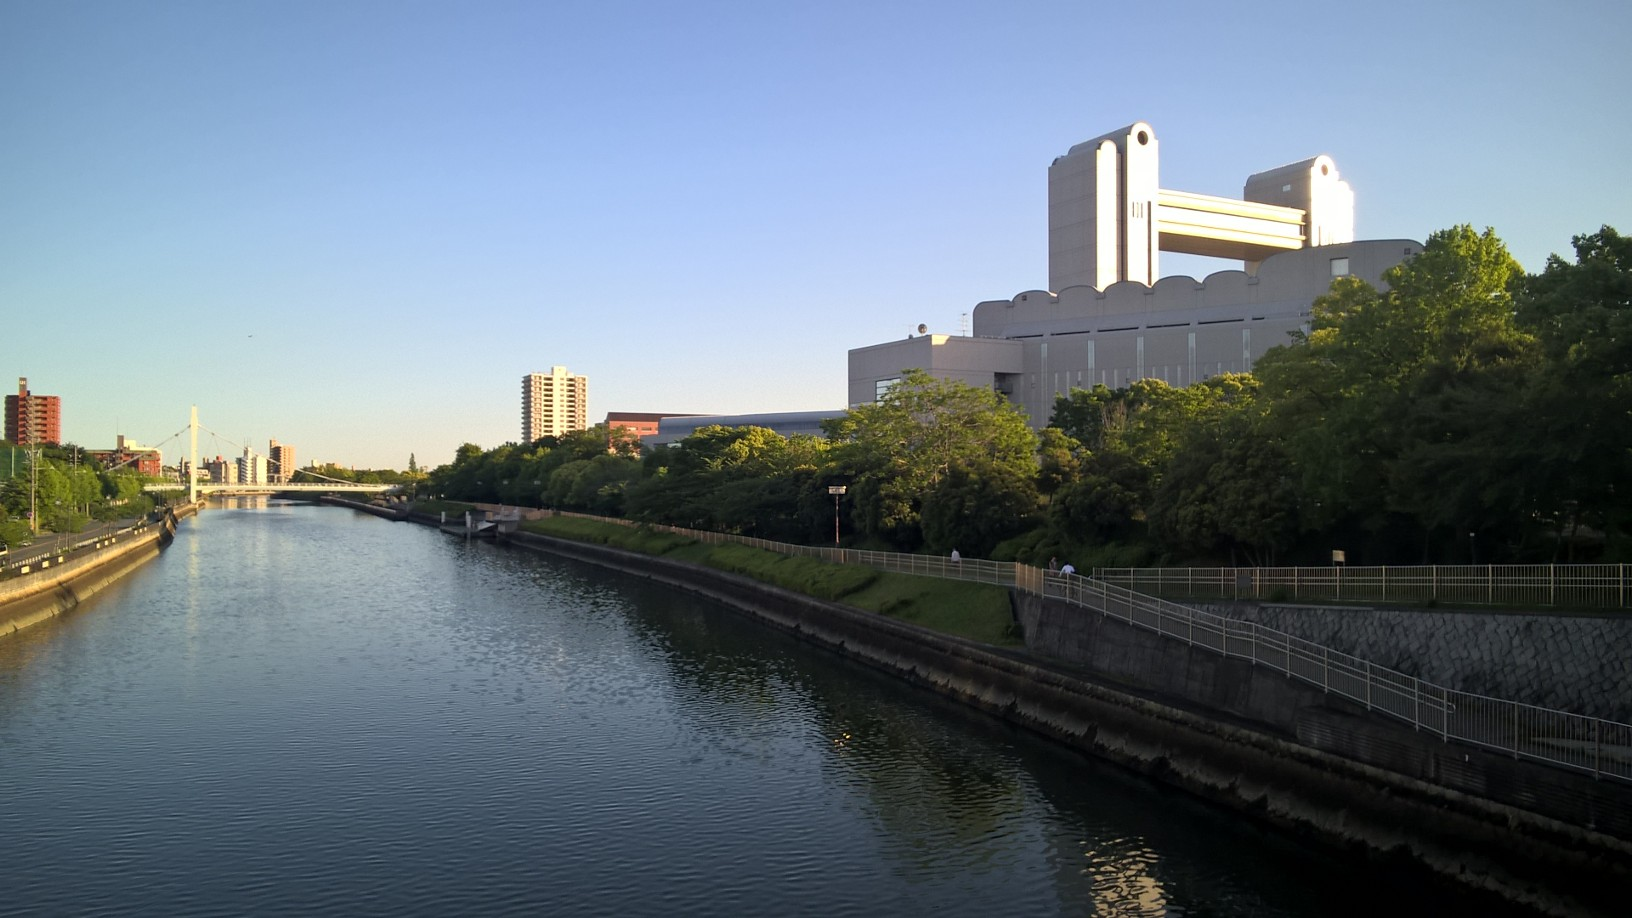 Nagoya Congress Center by the Horikawa River.